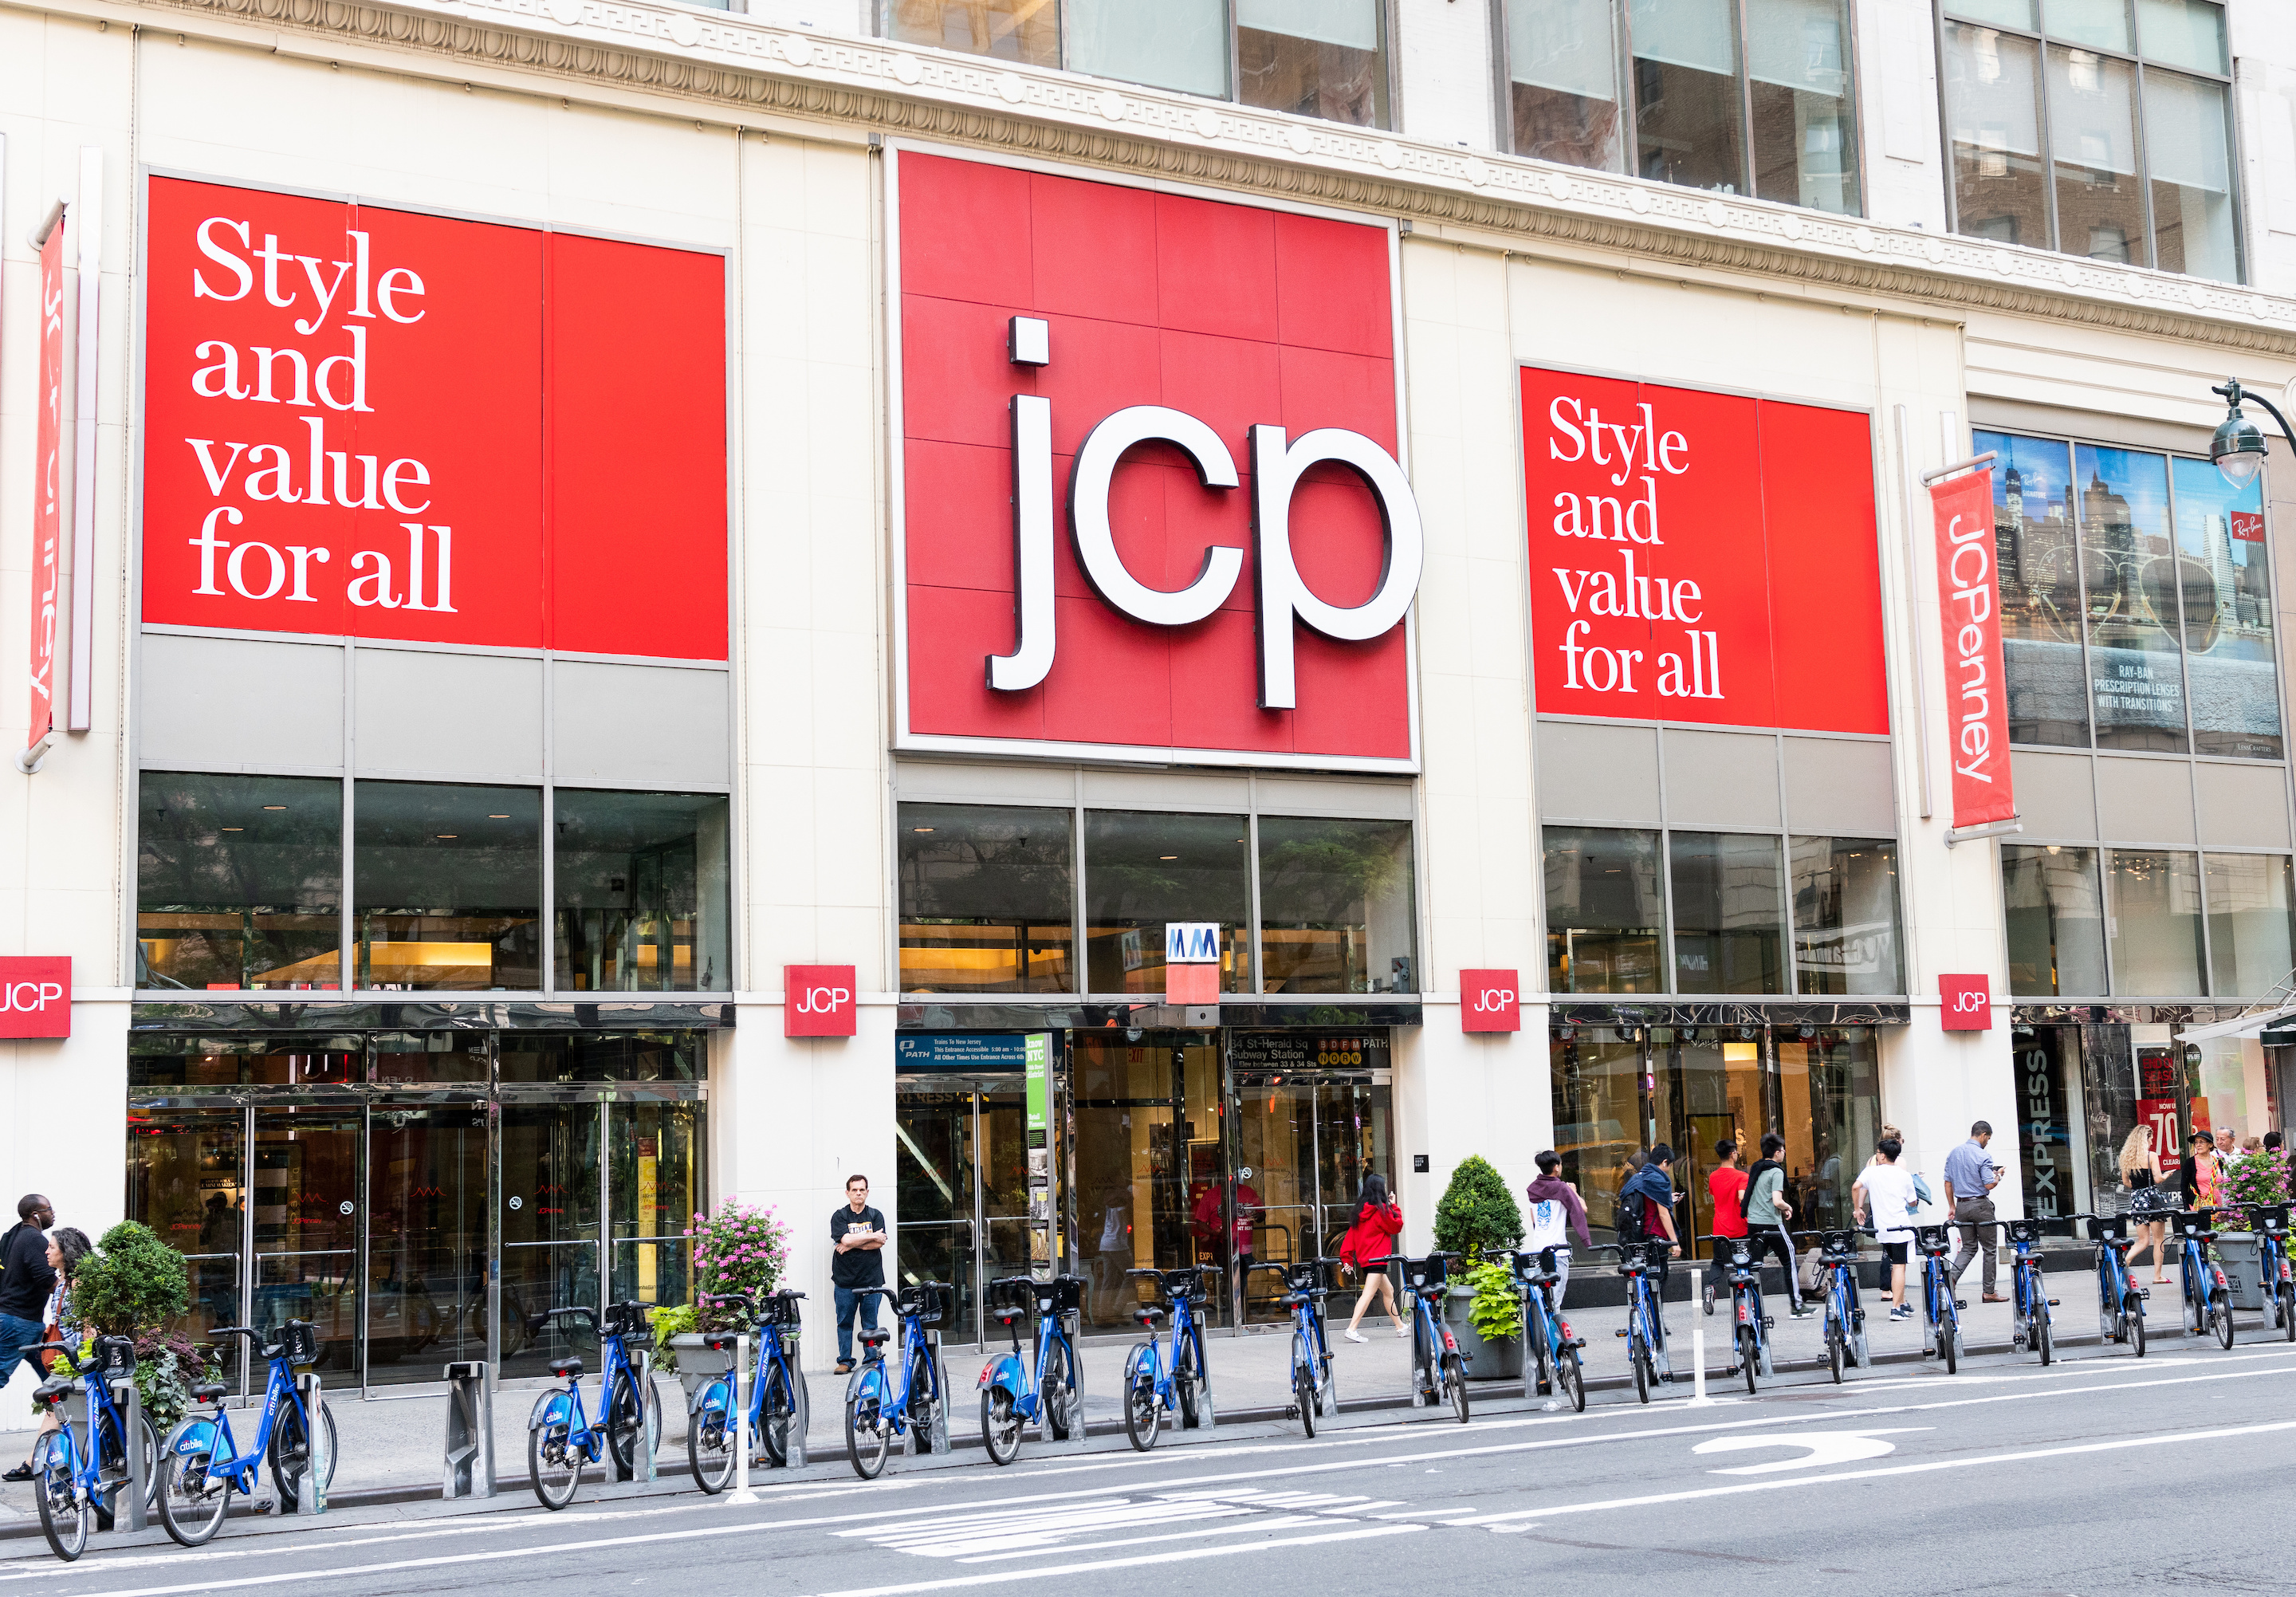 A J.C. Penny in New York City. The national chain is seeking new ways to turn its business around.